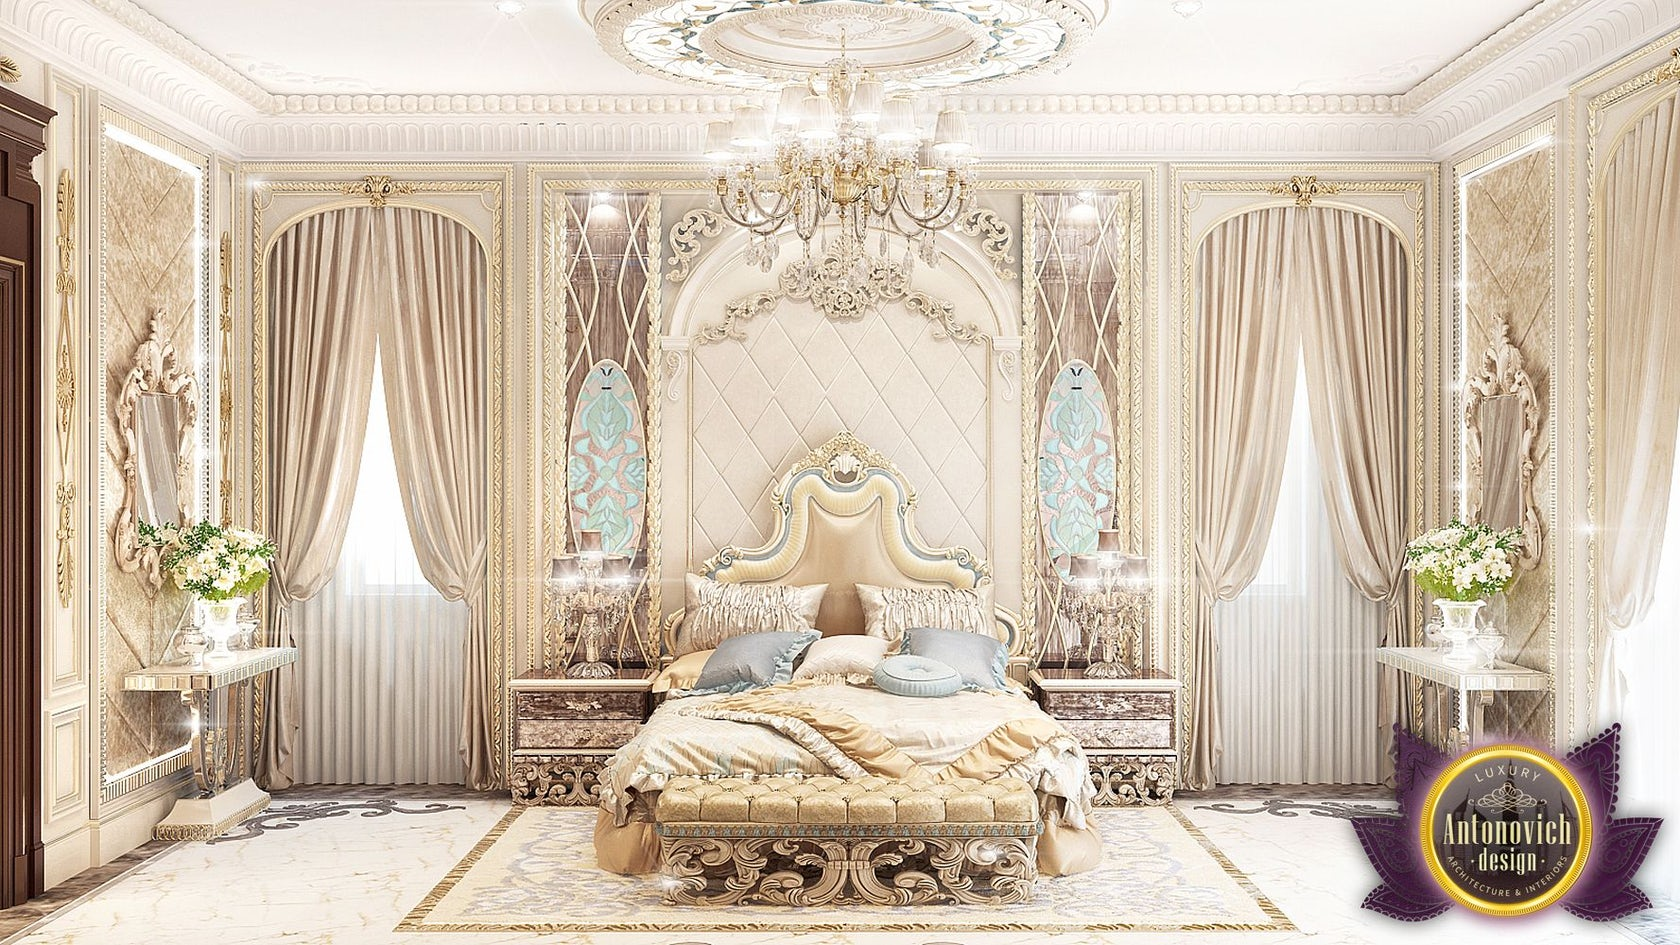 Luxury Royal Arabic Master Bedroom Of Luxury Antonovich